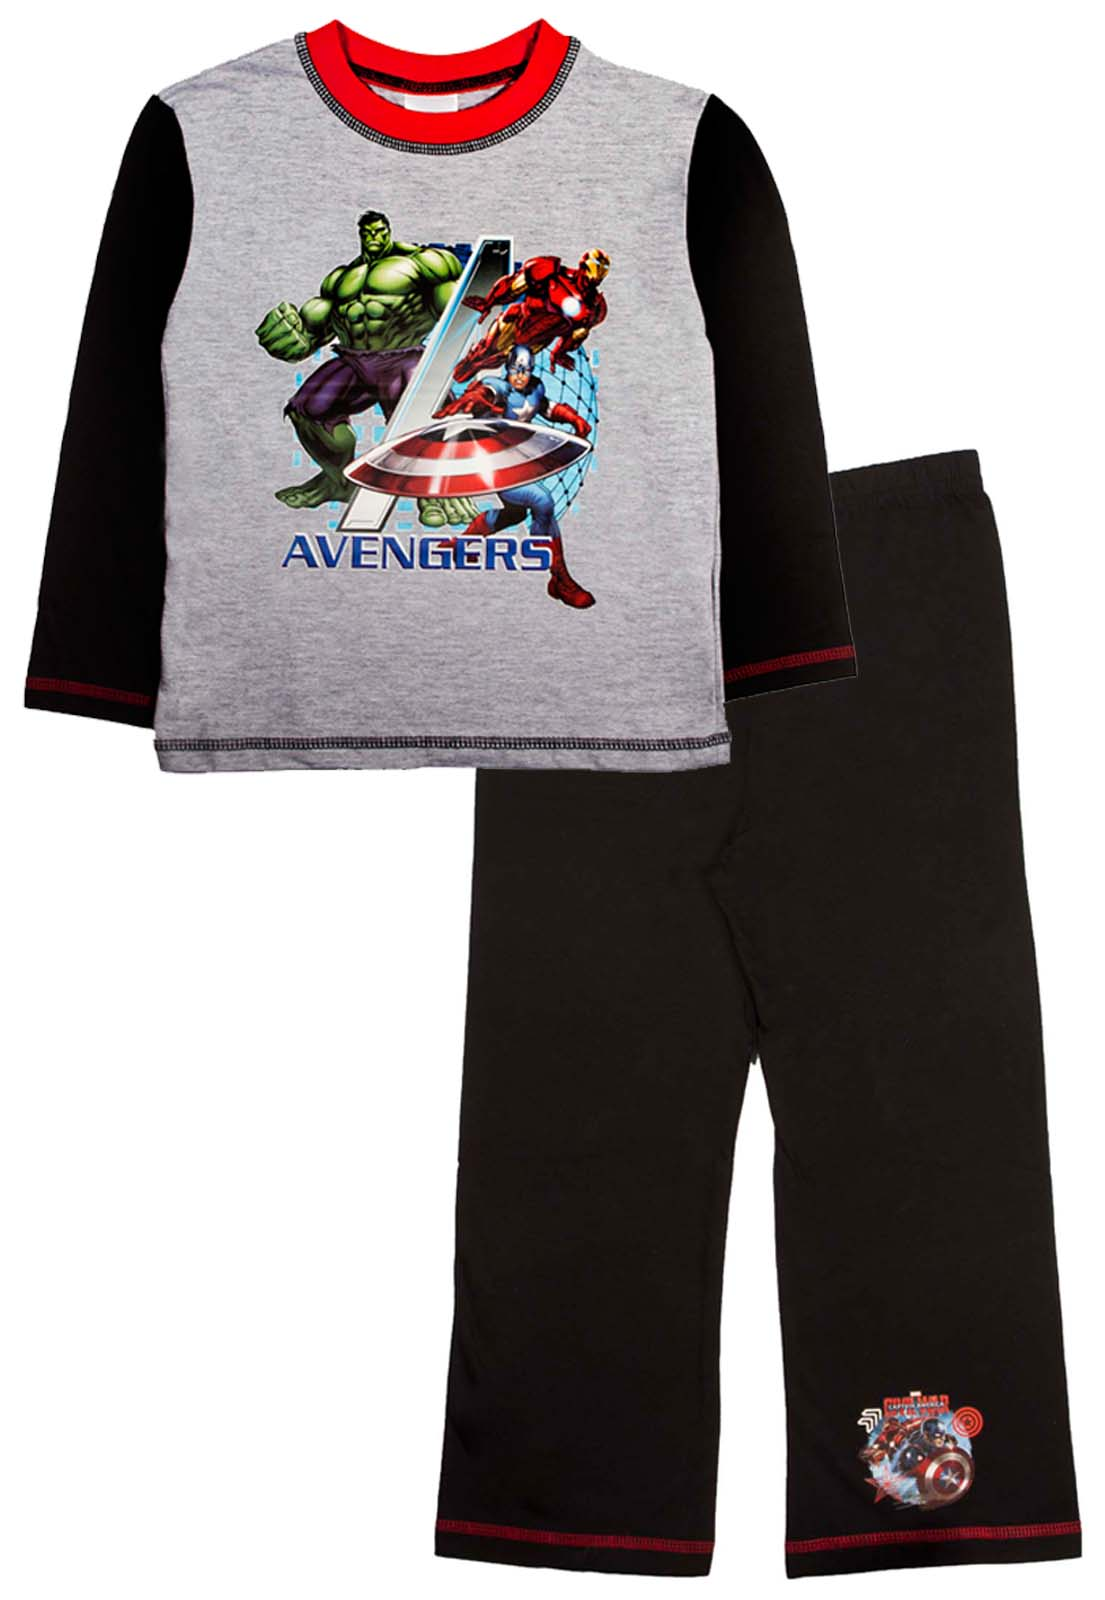 Avengers' Boys' 2-Pairs Tight Fit Pajamas Regular price: $ This is a price that we offered to our customers in the past 90 days or that was offered by a competitor for the same or similar item at some point in the last 90 days.